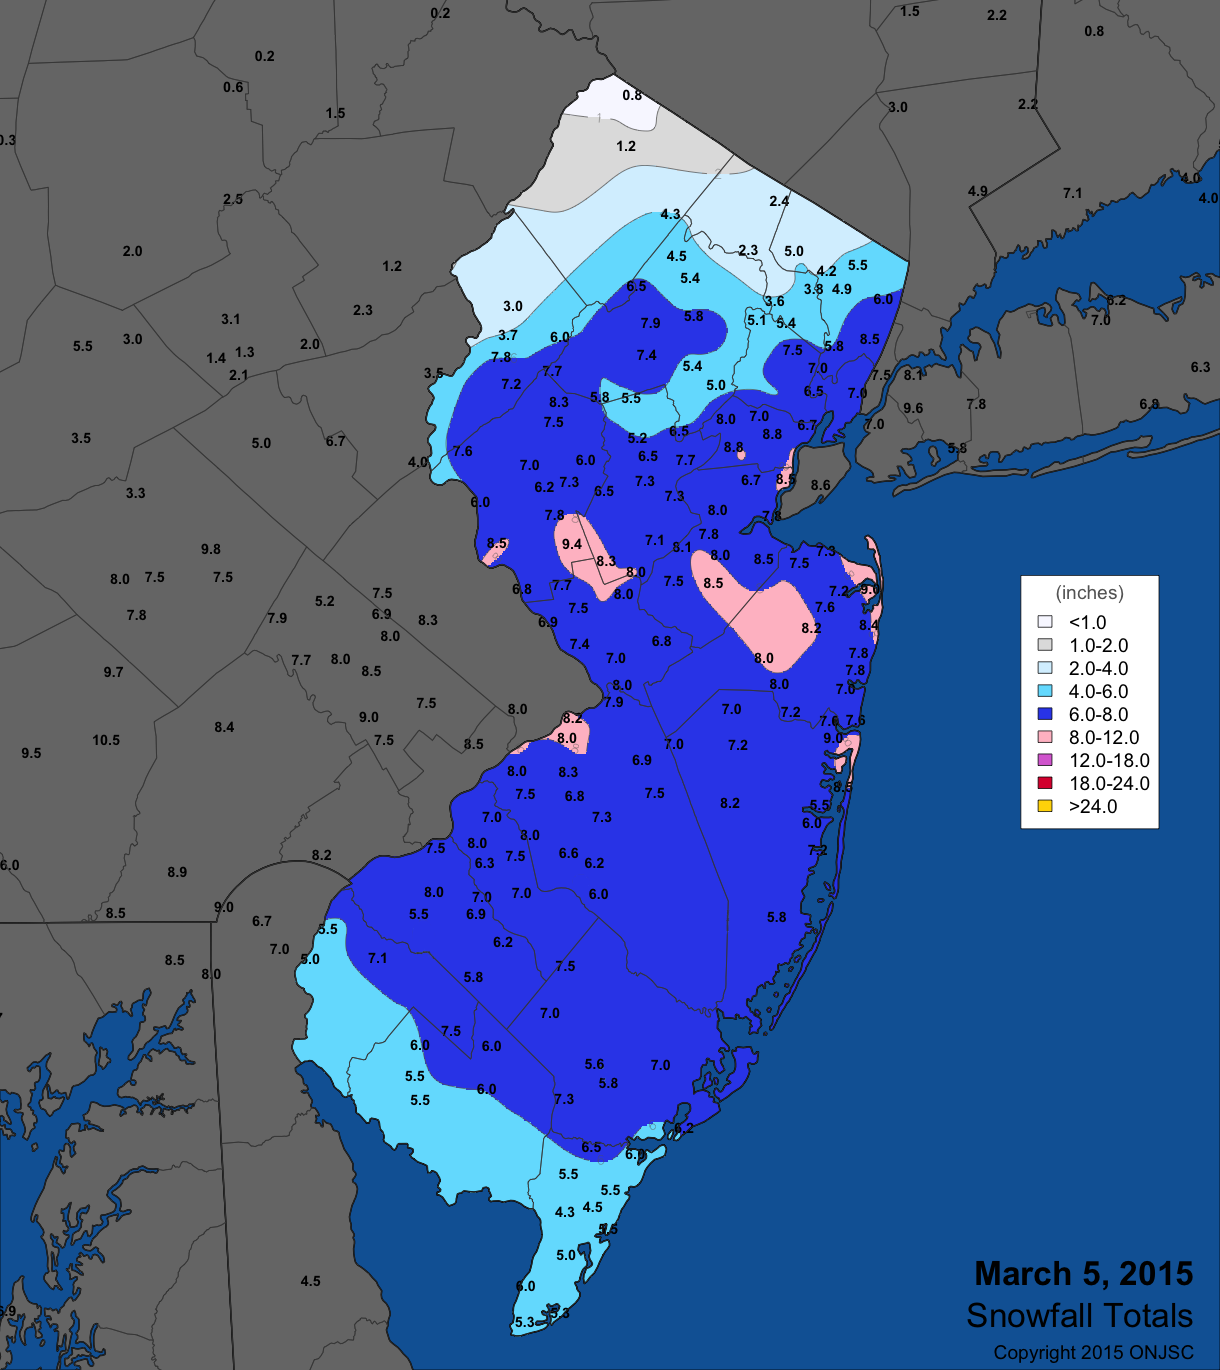 March 5 snow map